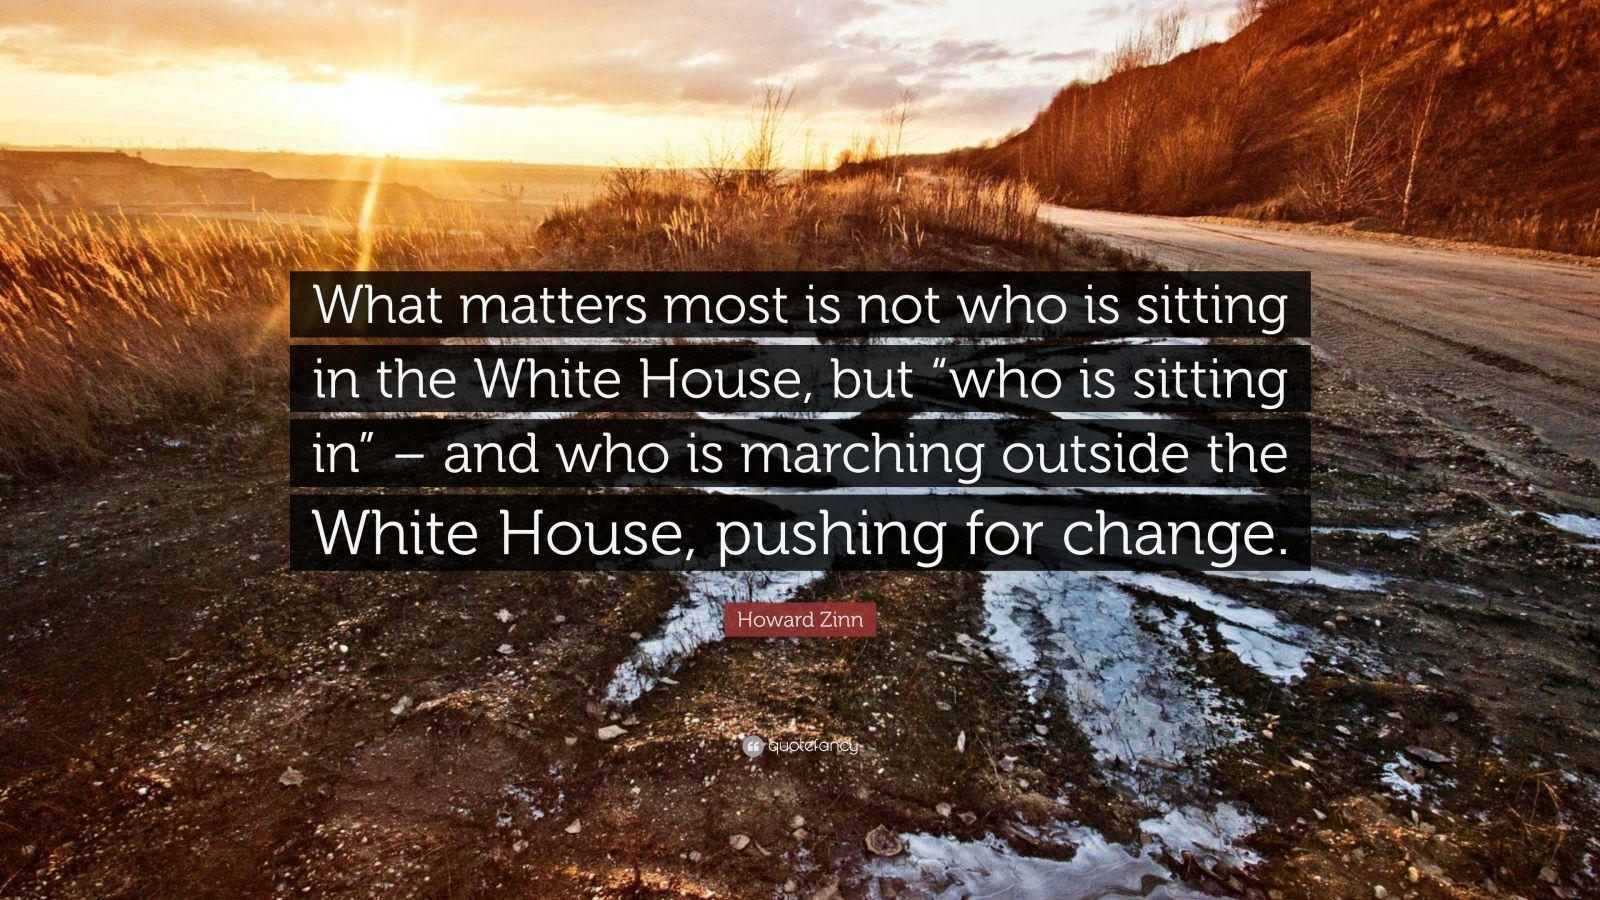 """Howard Zinn Quote: """"What matters most is not who is sitting in the White House, but """"who is sitting in"""" – and who is marching outside the White House, pushing for change."""""""